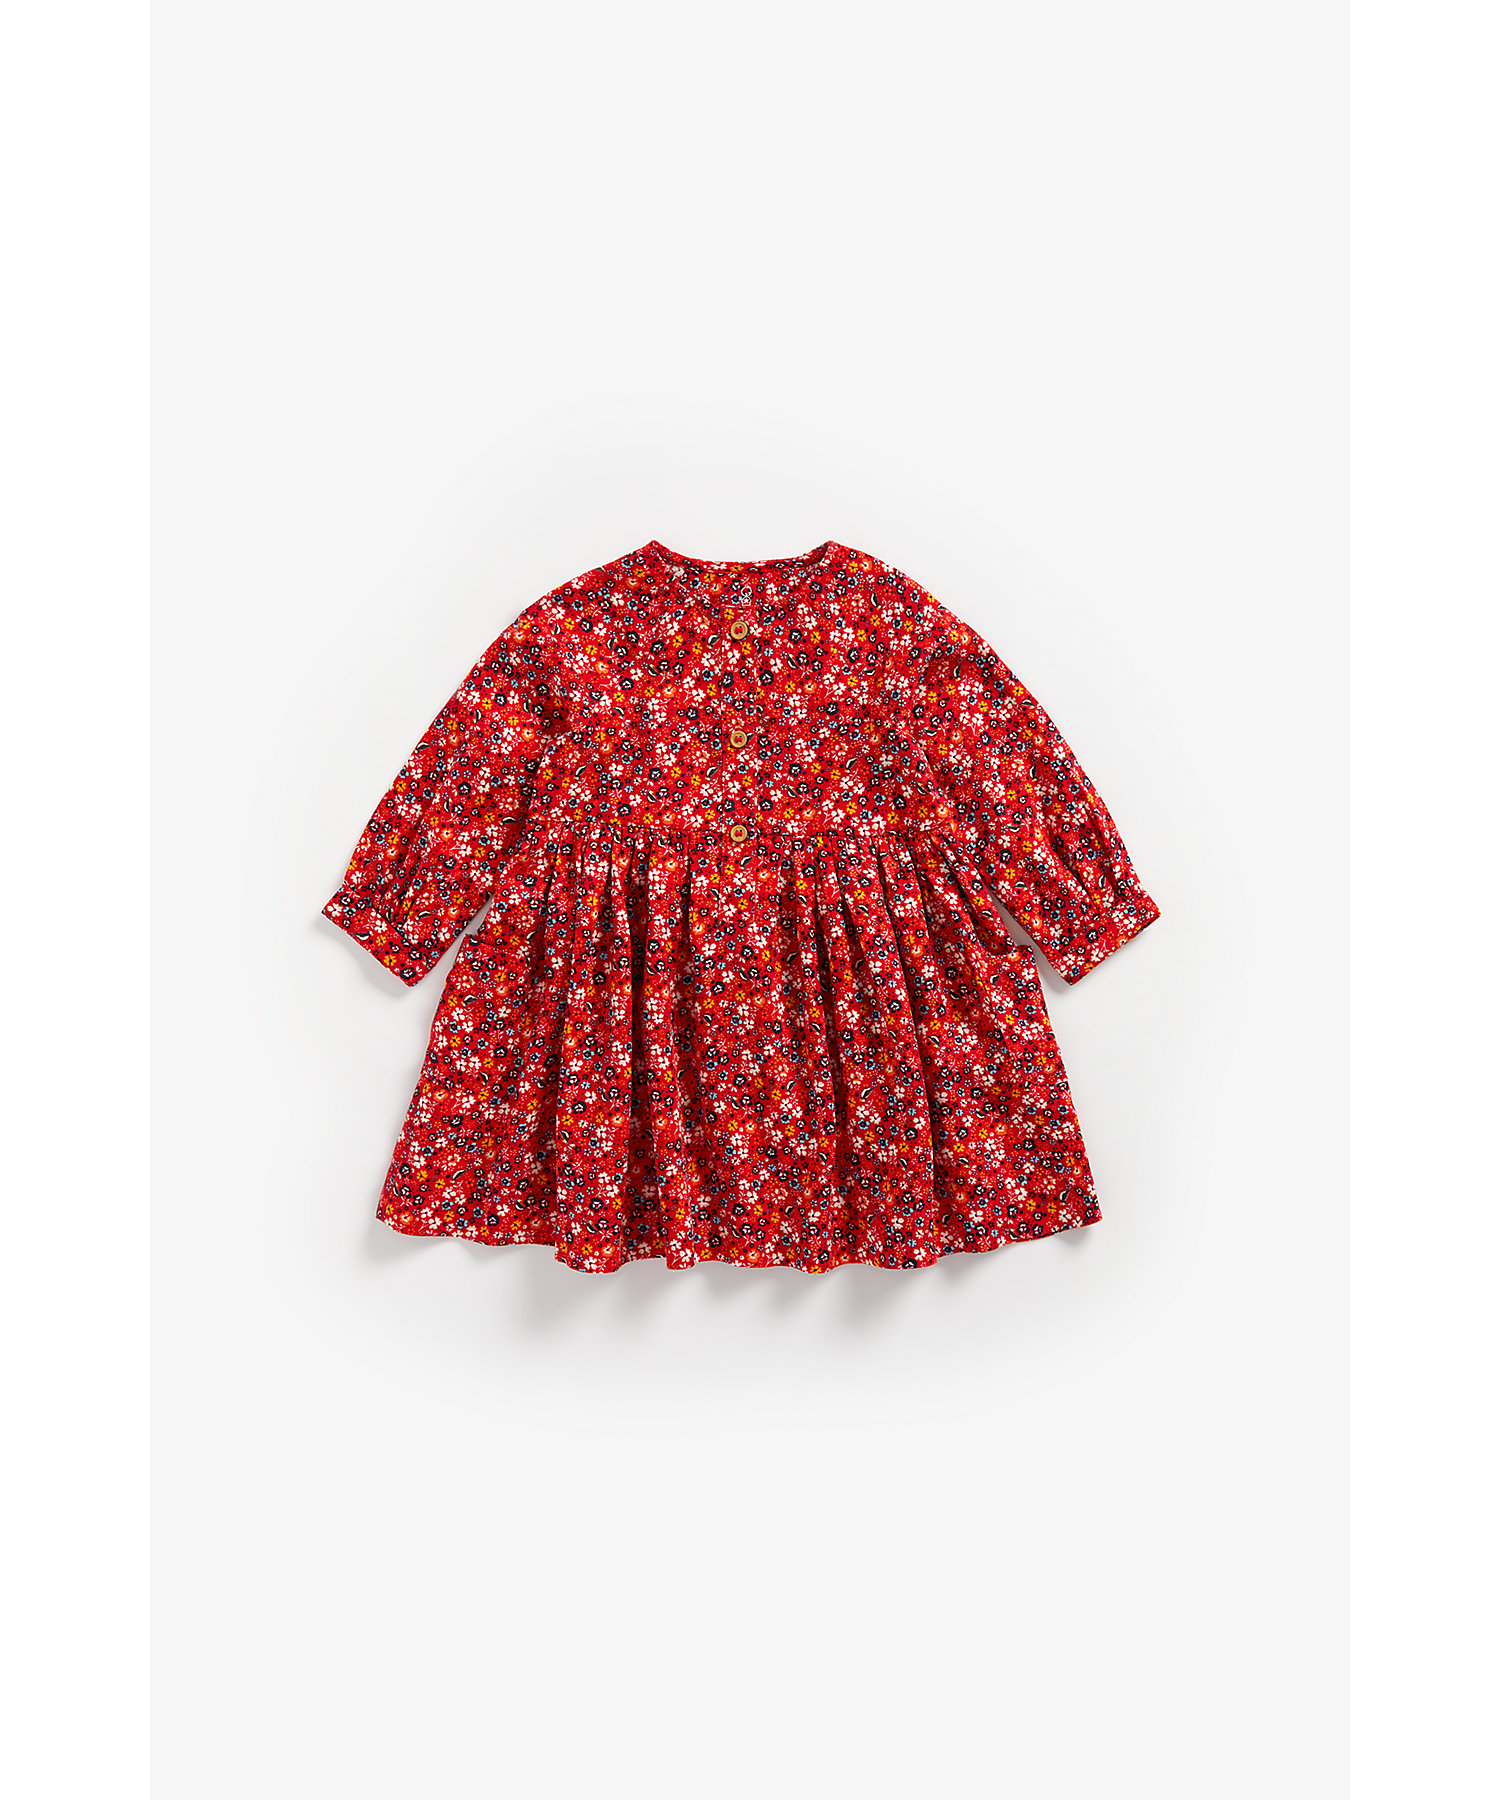 Mothercare | Girls Full Sleeves Dress Floral Print - Red